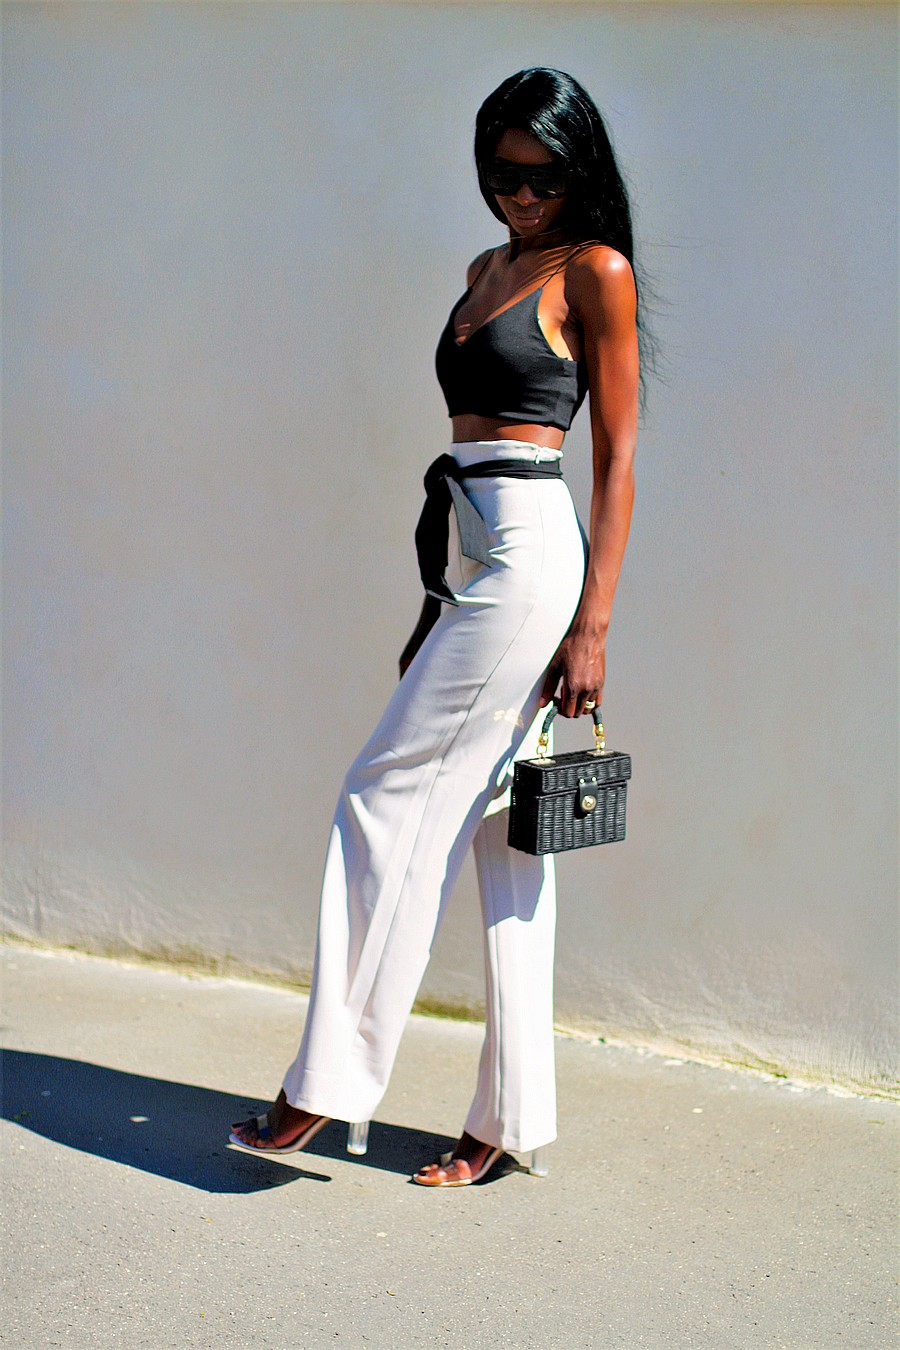 idee-tenue-chic-tendance-pantalon-large-sac-paille-brassiere-crop-top